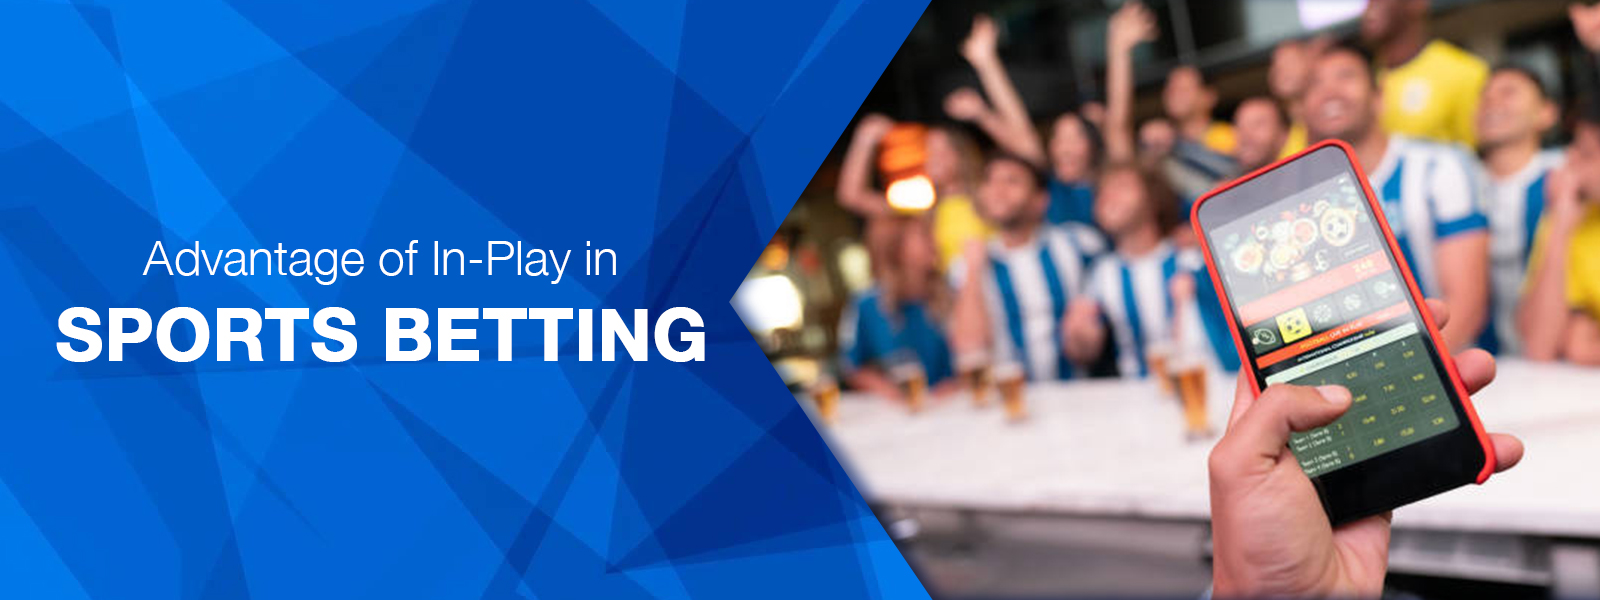 Advantage Of In-Play In Sports Betting